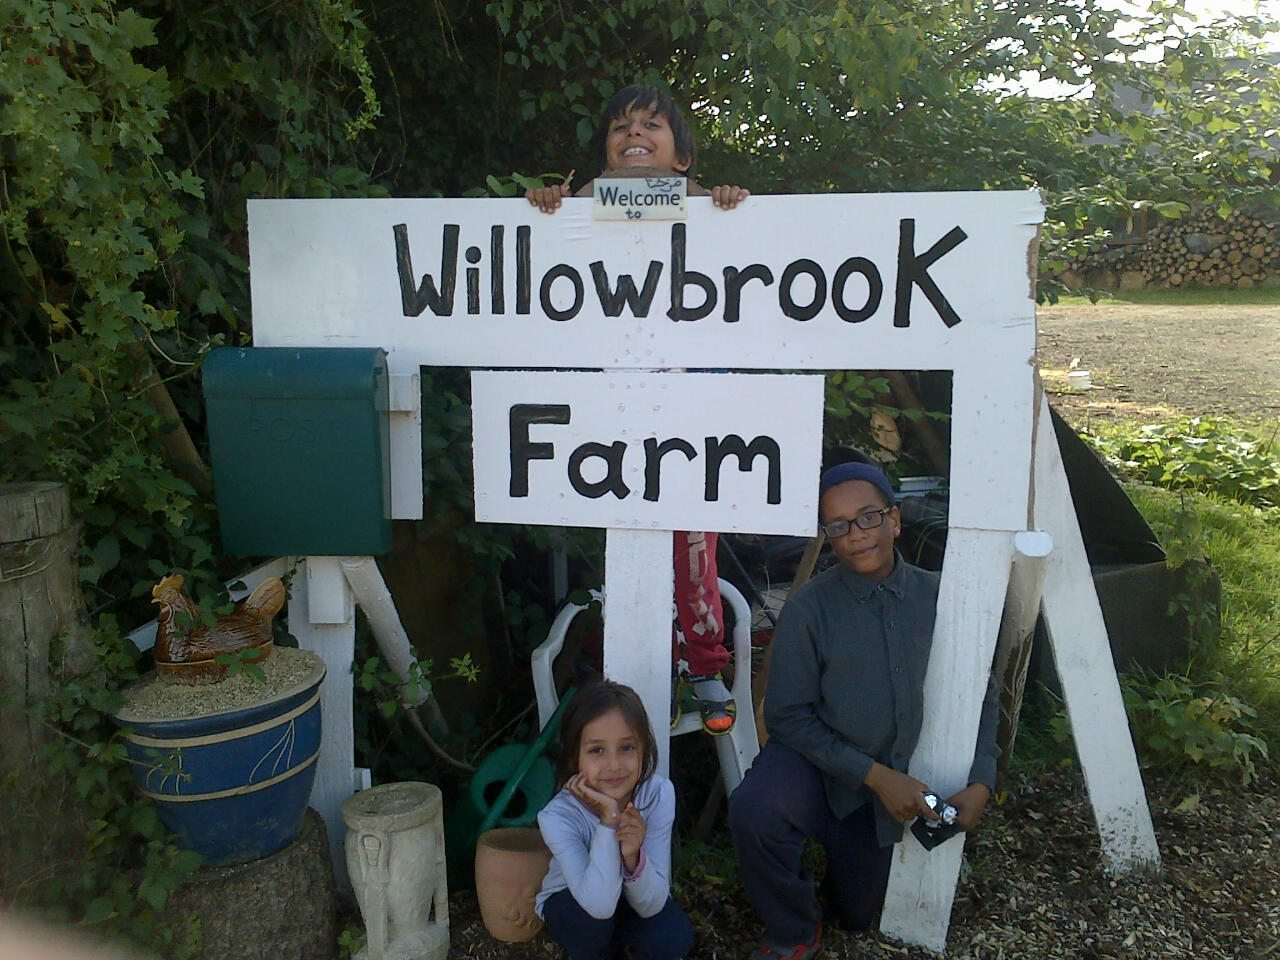 Willowbrook Farm: halal, healthy, organic and fun for all